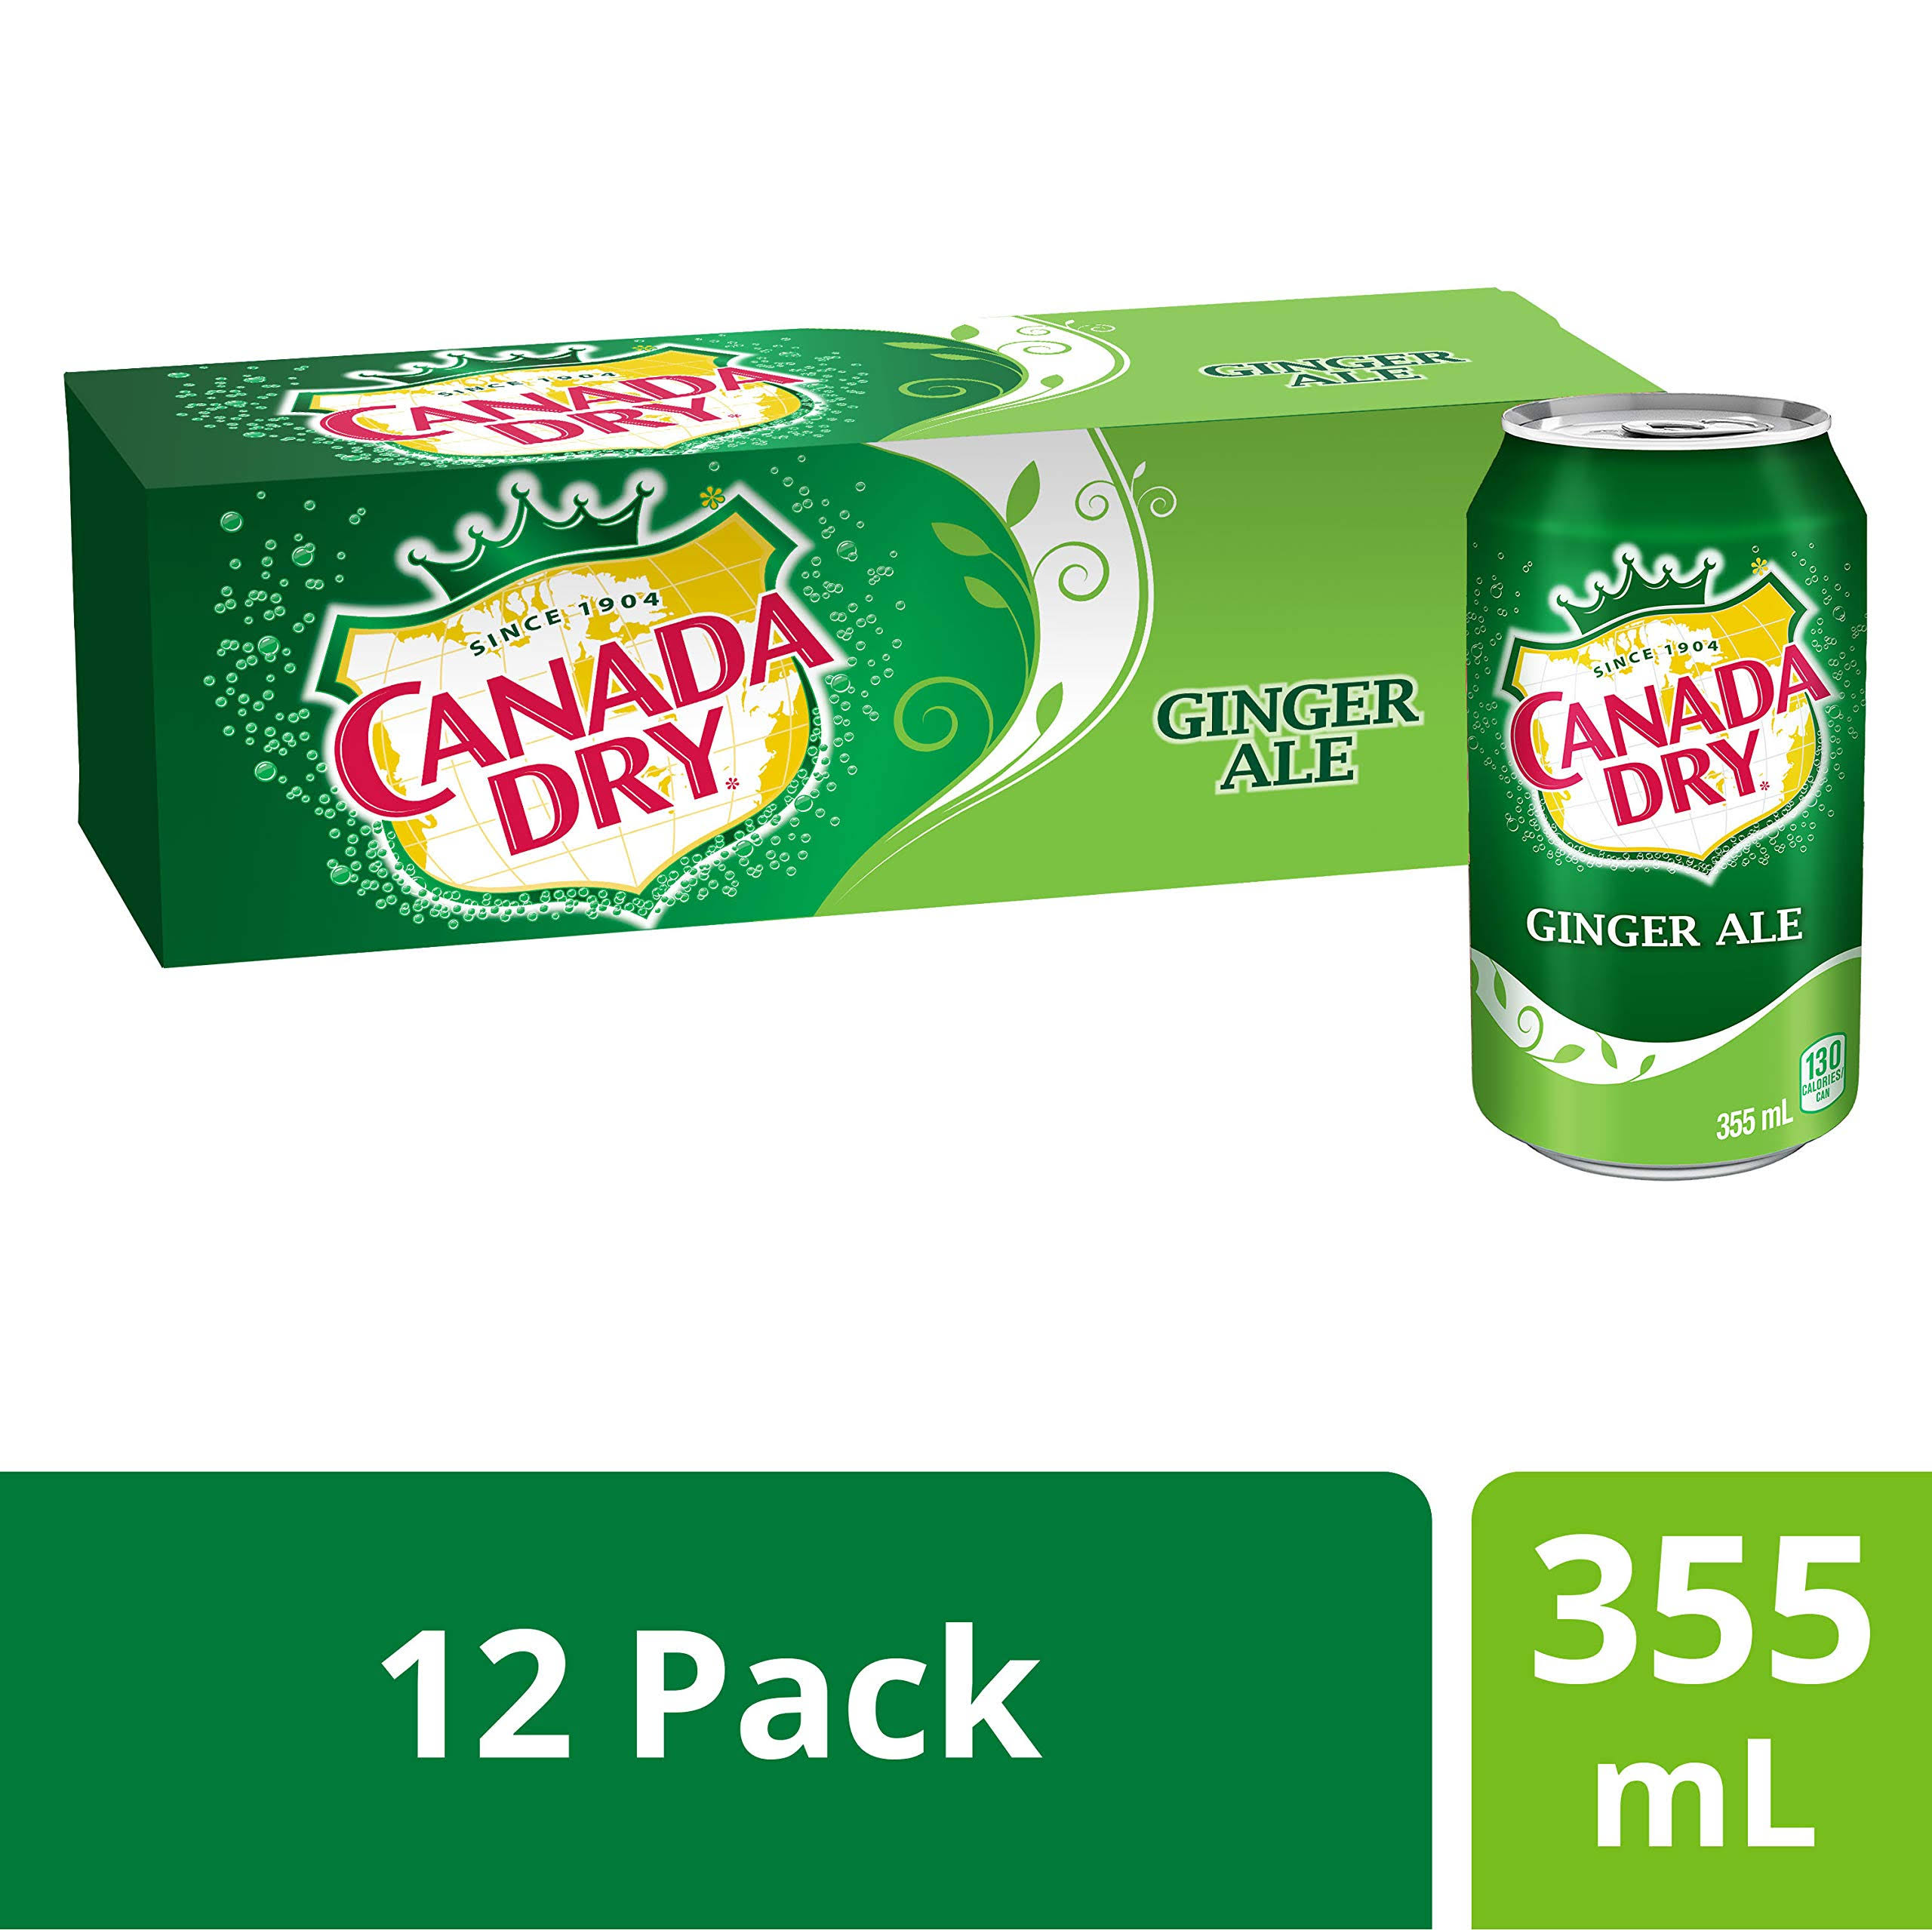 Canada Dry Ginger Ale - 355ml, 12ct